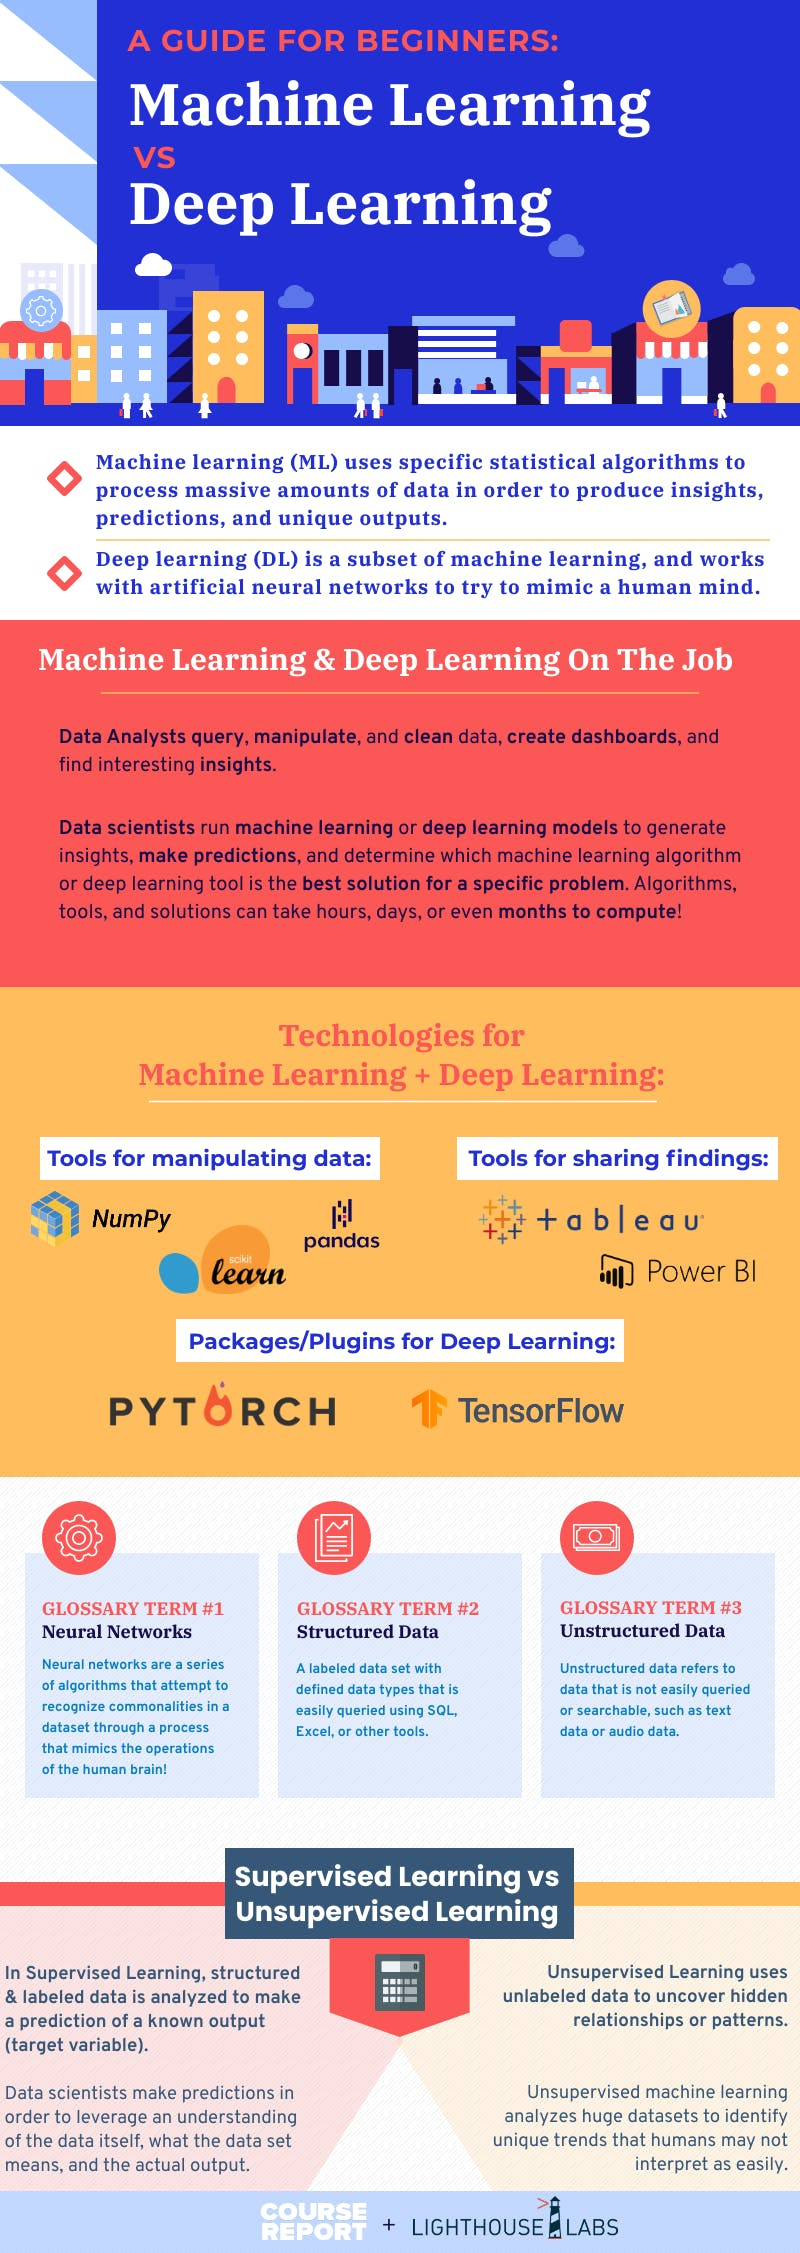 Lighthouse 20labs 20machine 20learning 20vs 20deep 20learning 20infographic 20updated